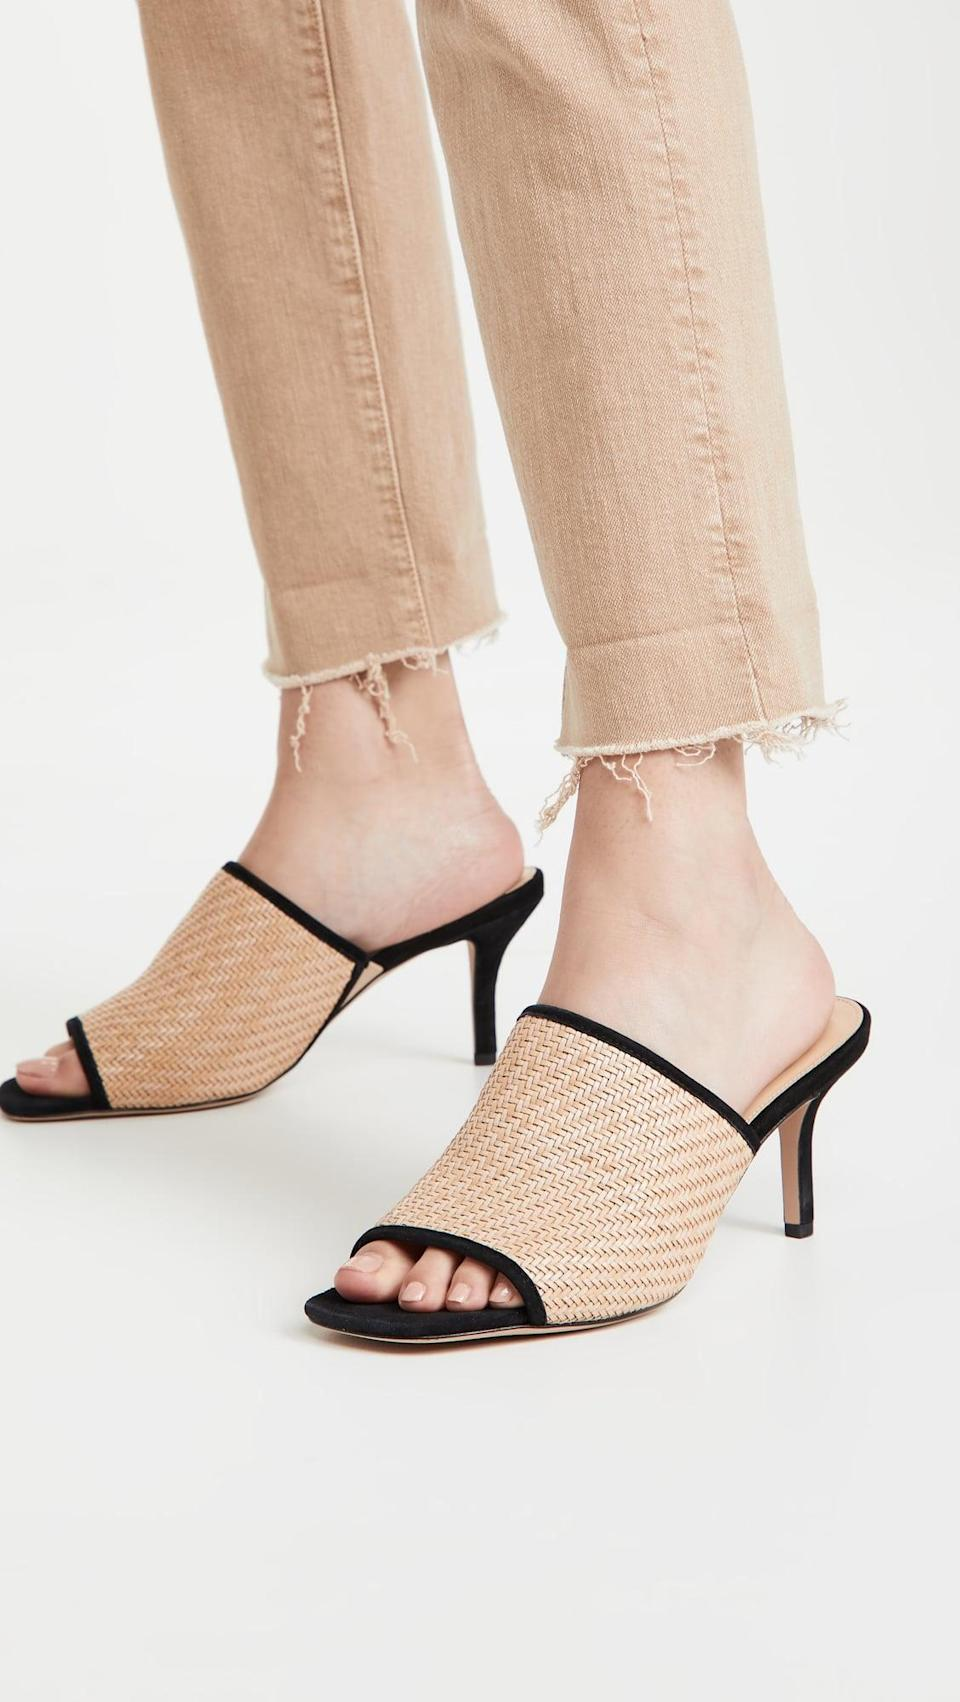 <p>We love the two tone of these <span>Veronica Beard Maisie Mules</span> ($325). The tan and black together is elevated and sophisticated.</p>